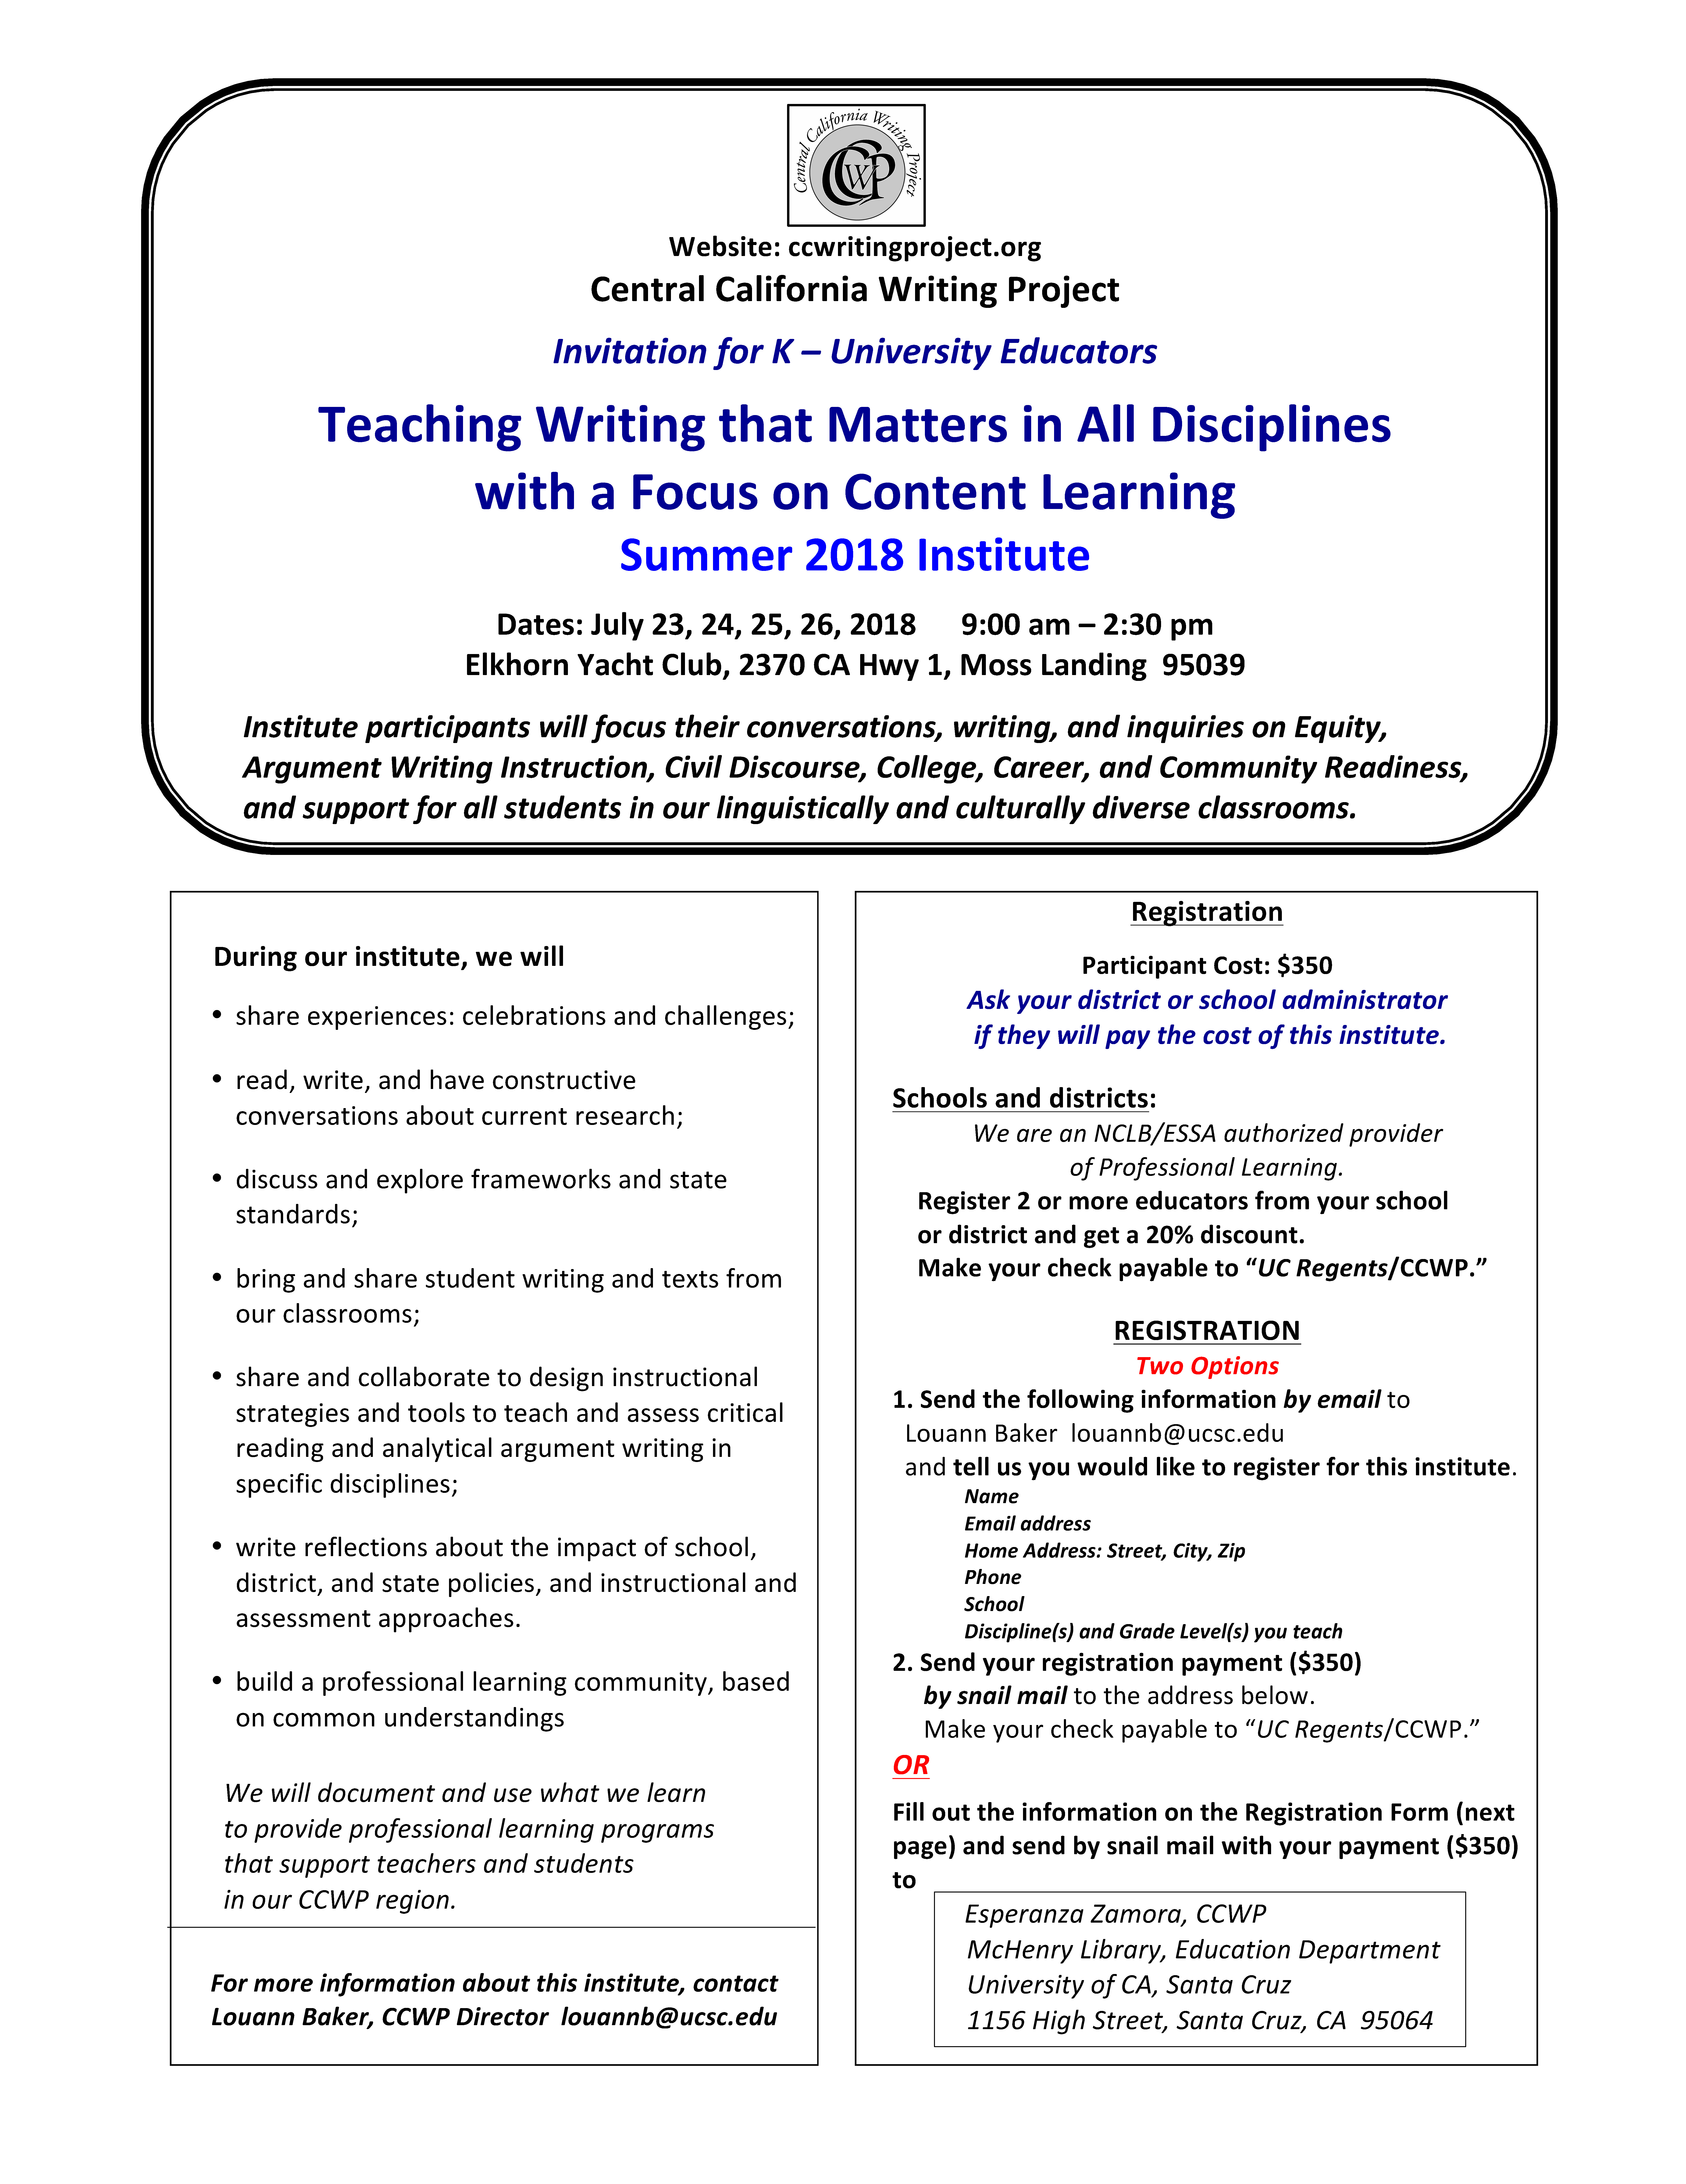 central california writing project 2018 summer open institute